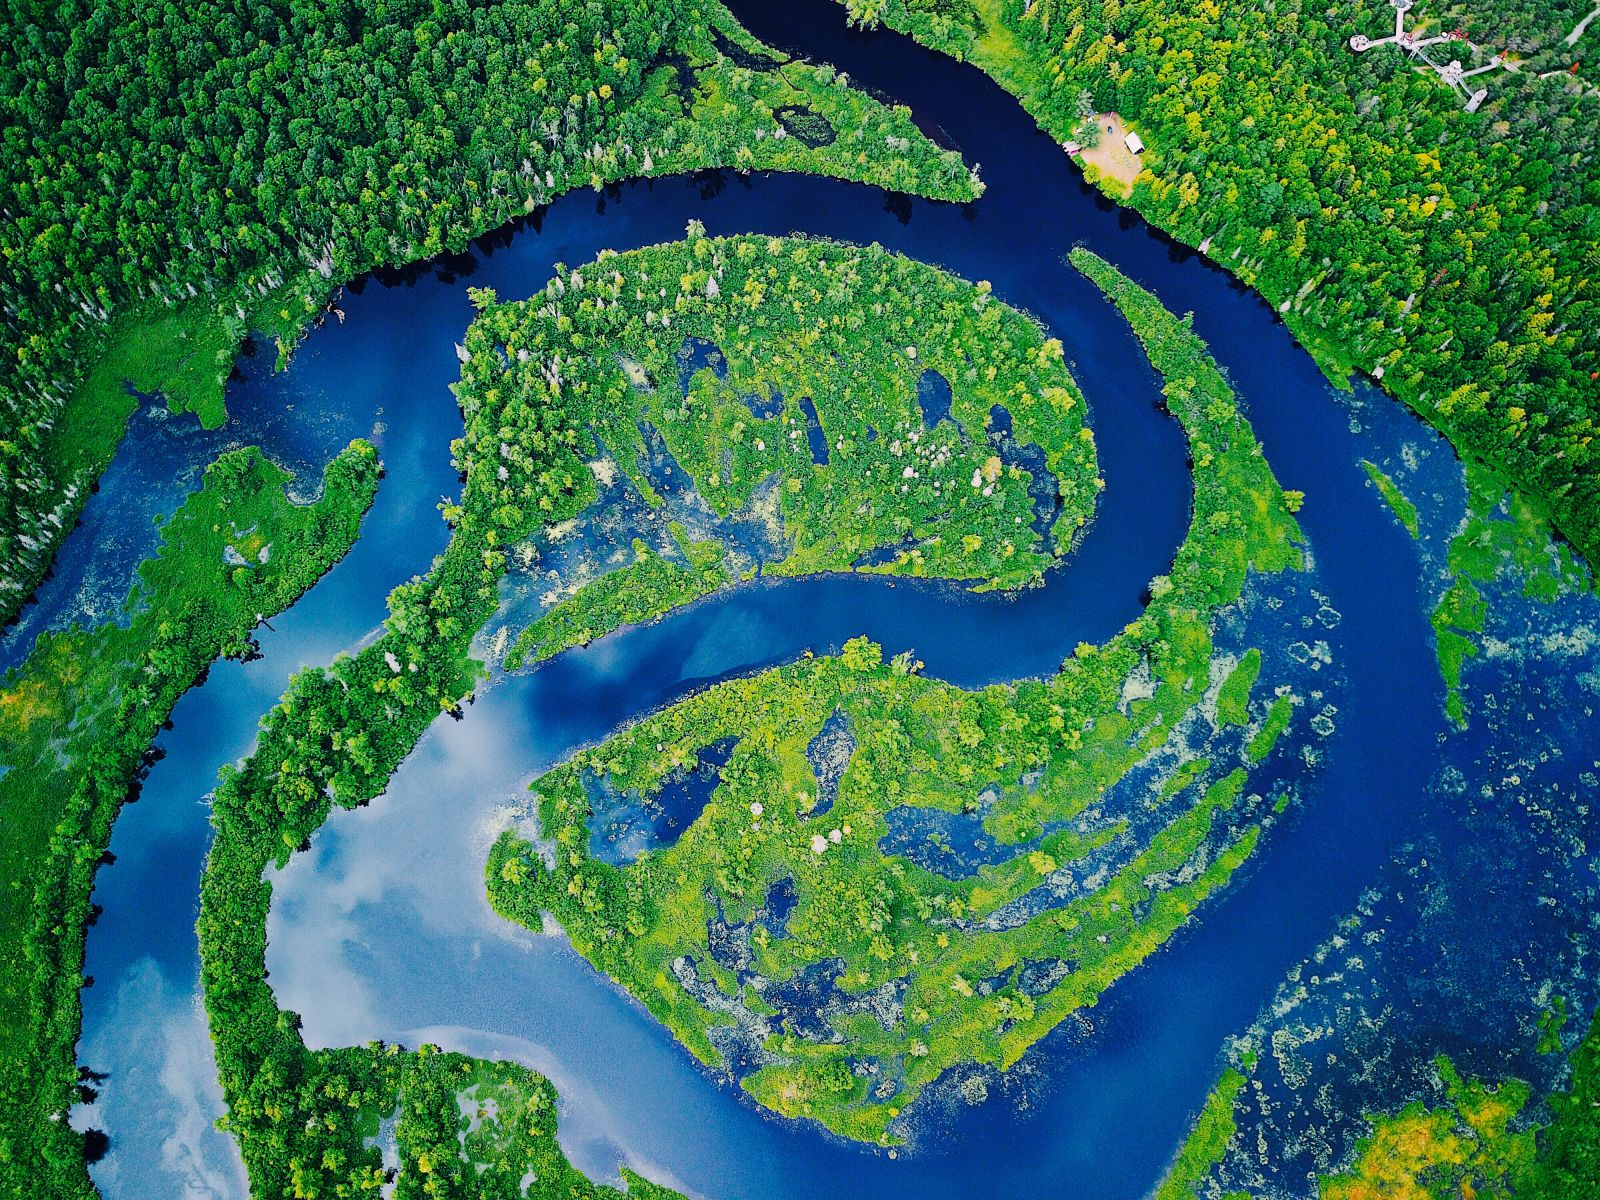 Bird's-eye view of the oxbow